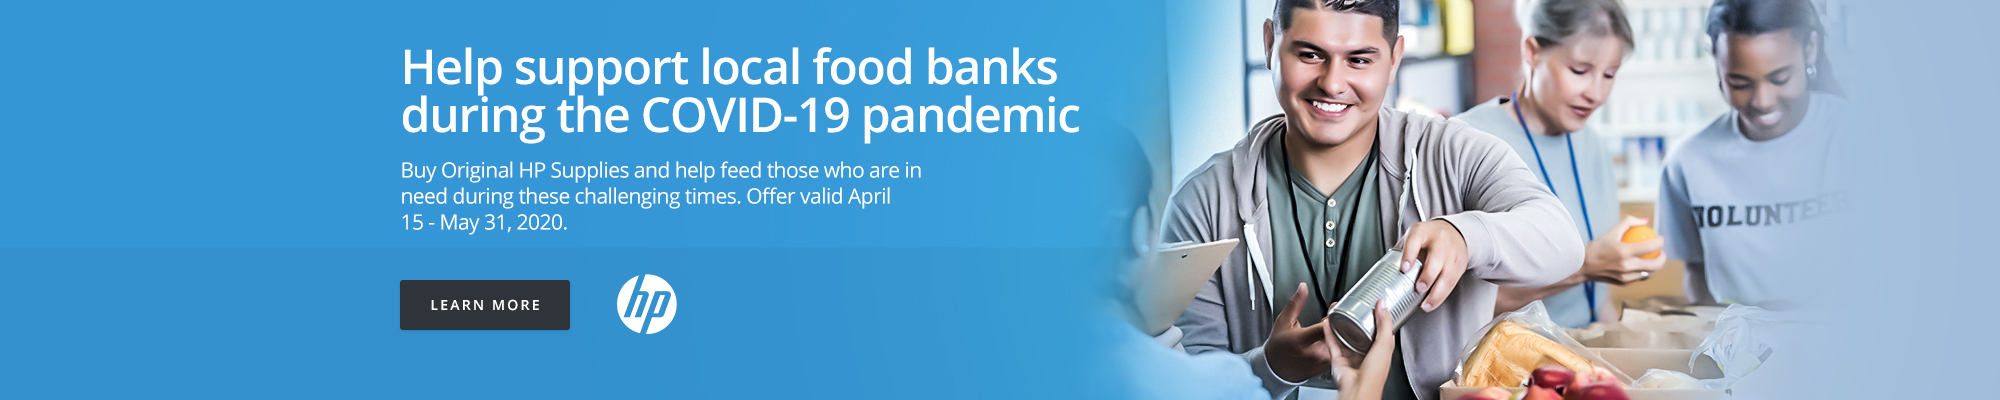 HP Supplies: Help support local food banks during the COVID-19 pandemic